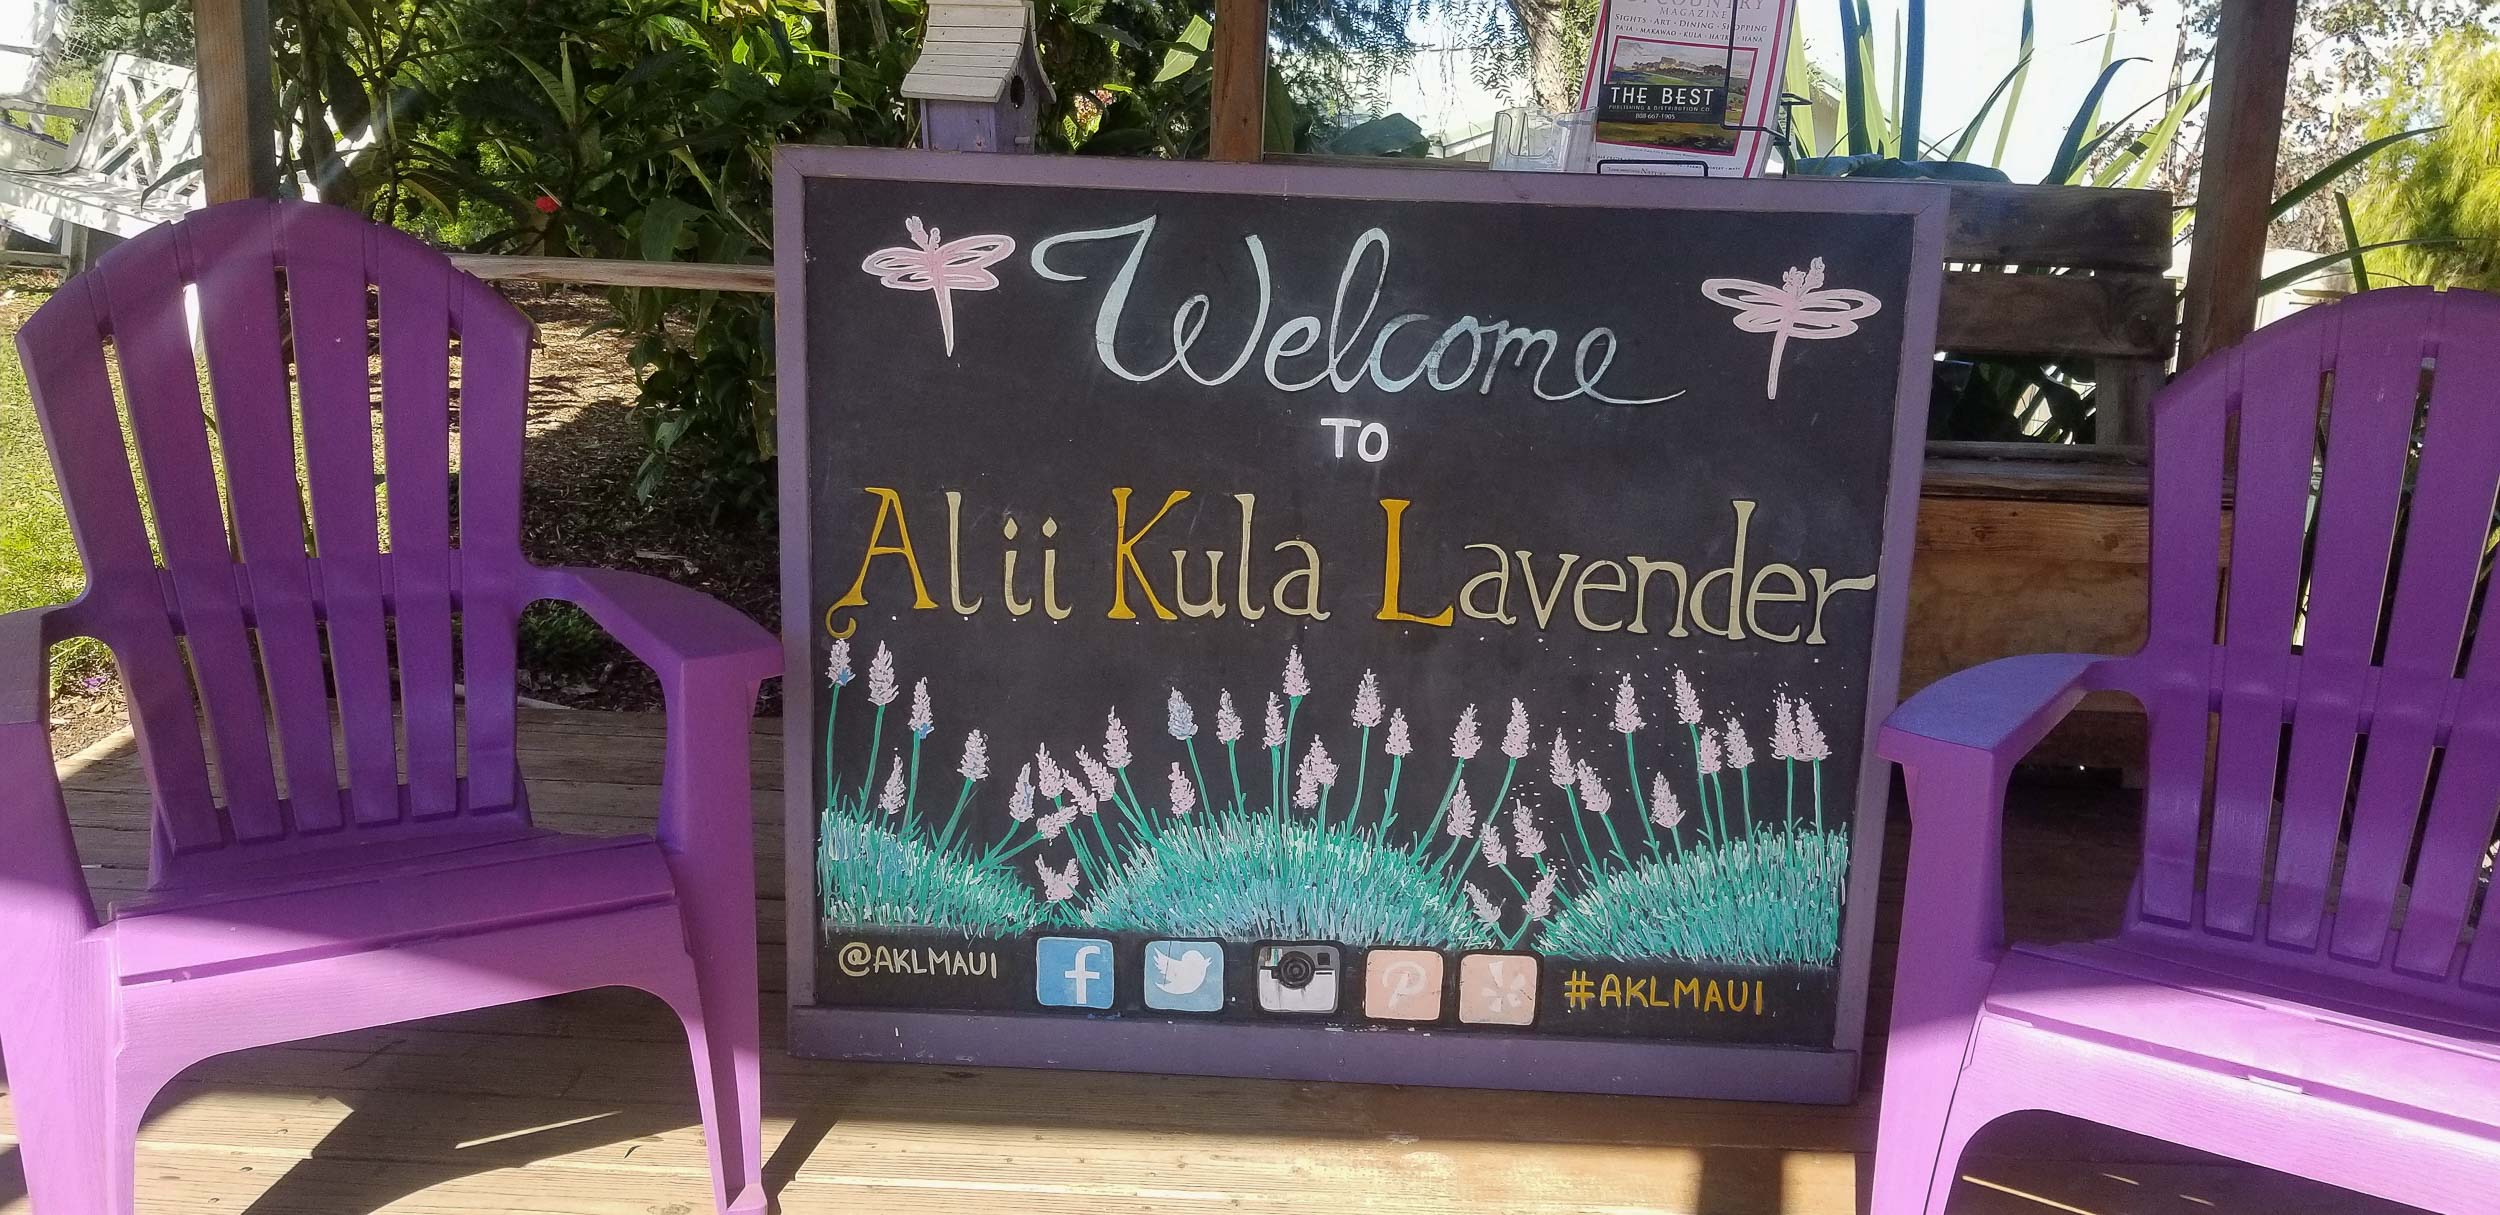 Alii Kula Lavender fields. Tips, tricks, and things to do in Maui, Hawaii. The ultimate travel guide along with rare, locals only secrets